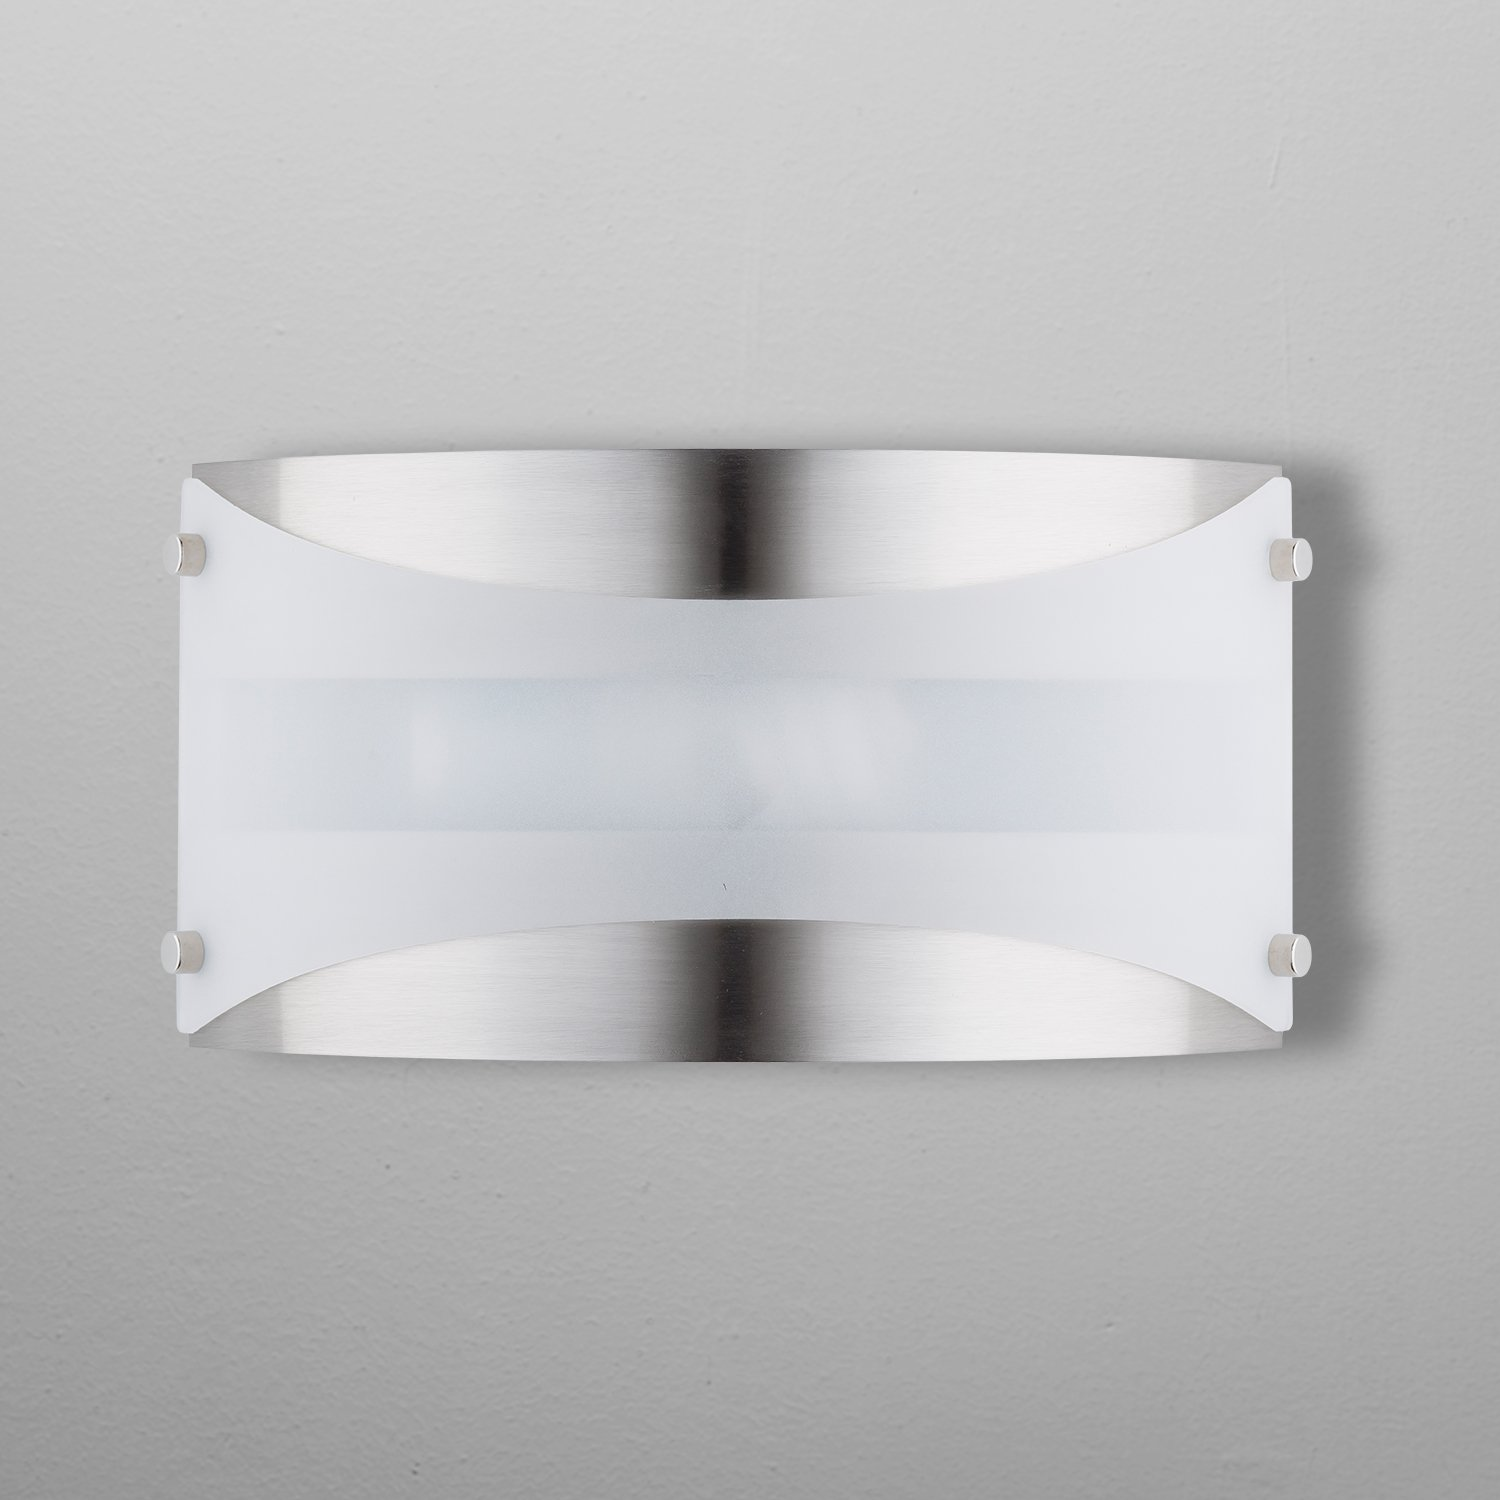 Acciaio Wall Sconce One-Light Lamp Brushed Nickel with White Diffuser - Linea di Liara LL-SC6-BN by Linea di Liara (Image #2)